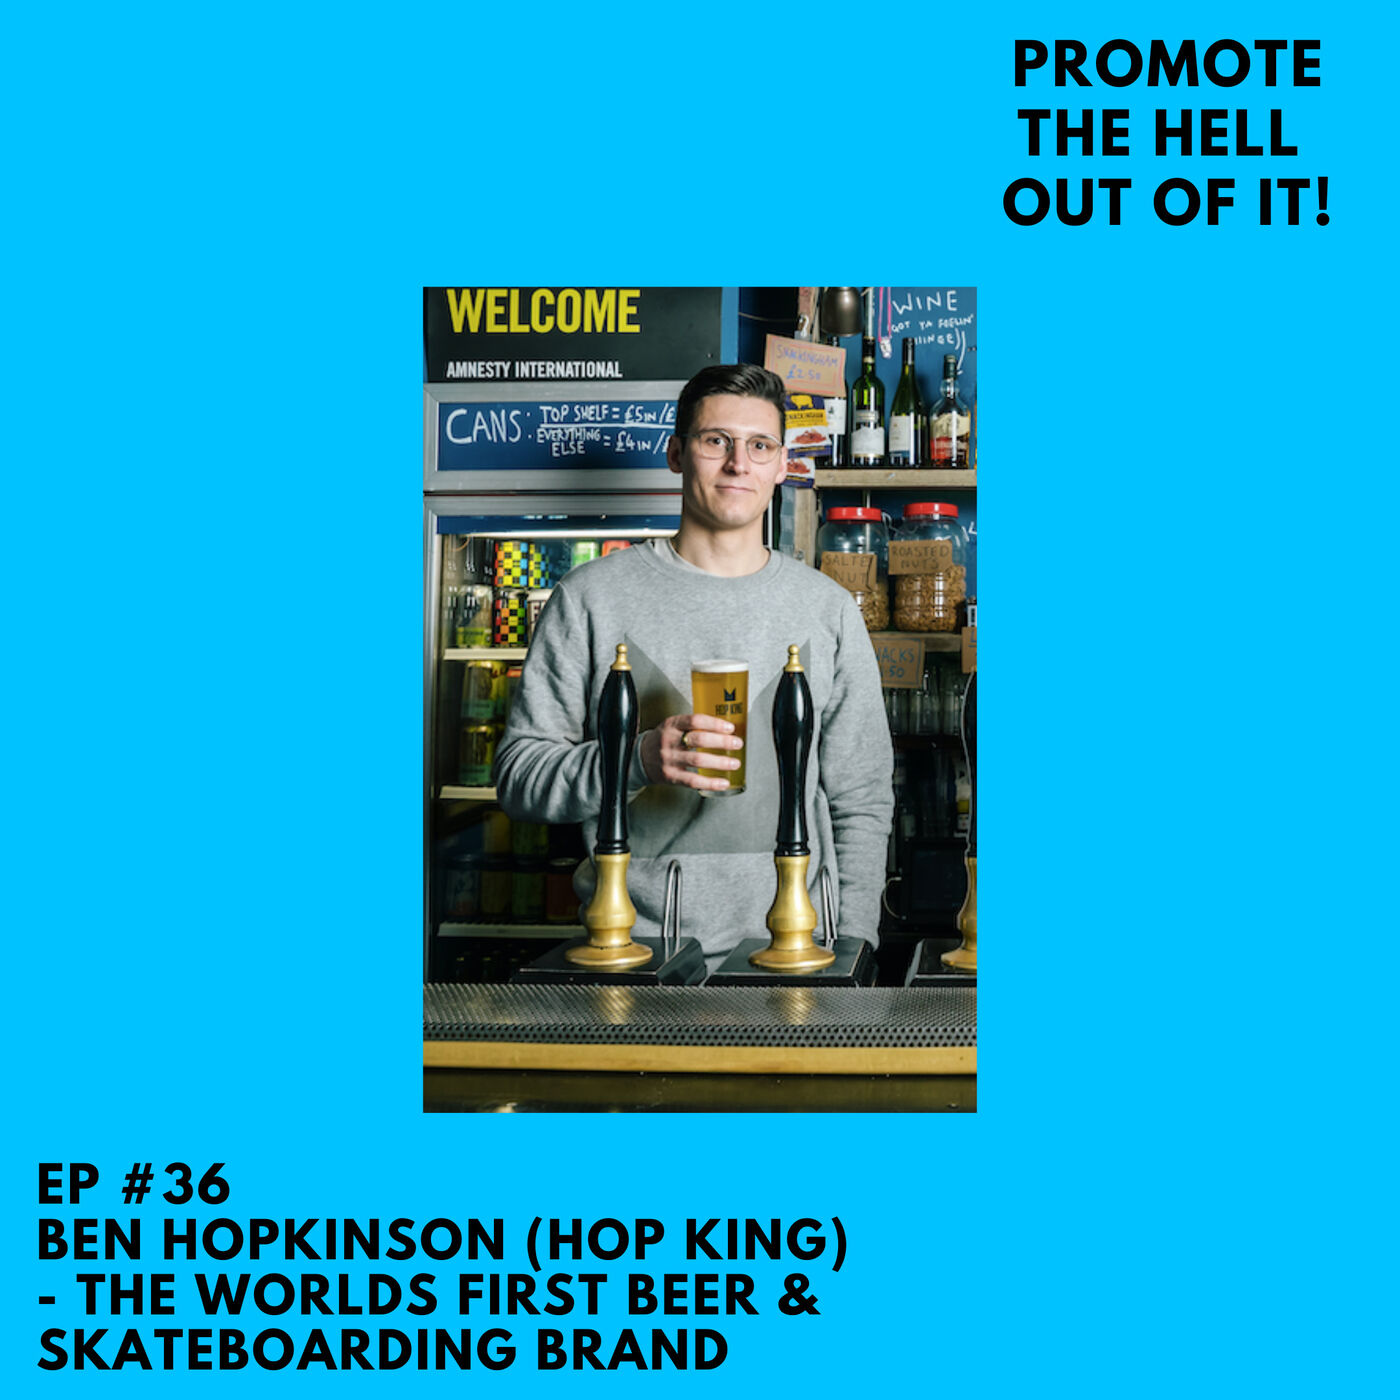 Ben Hopkinson (Hop King) - The Worlds First Beer & Skateboarding Brand!